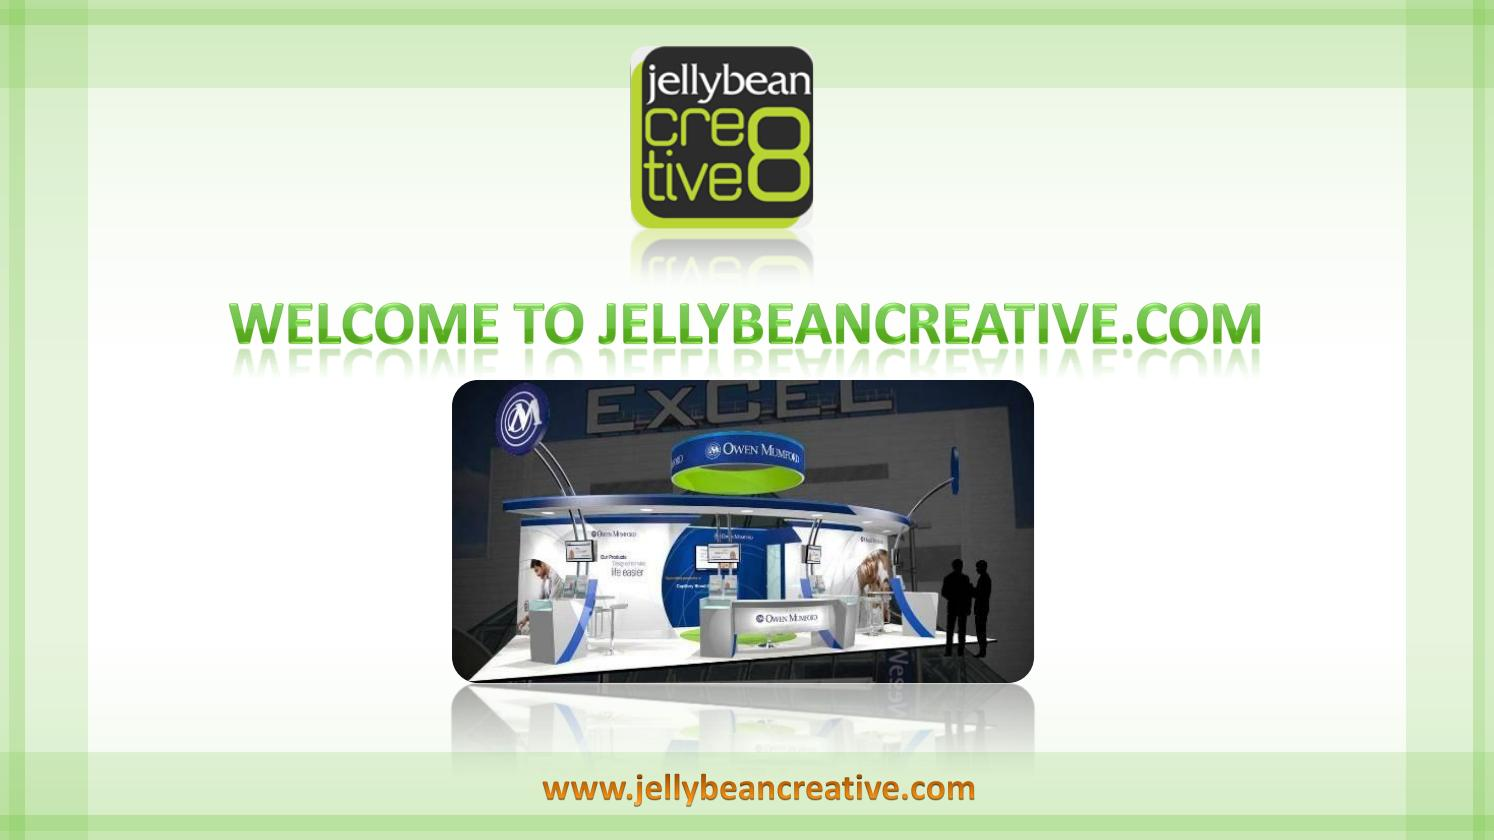 Professional Exhibition Stand Designers at Jellybeancreative.com